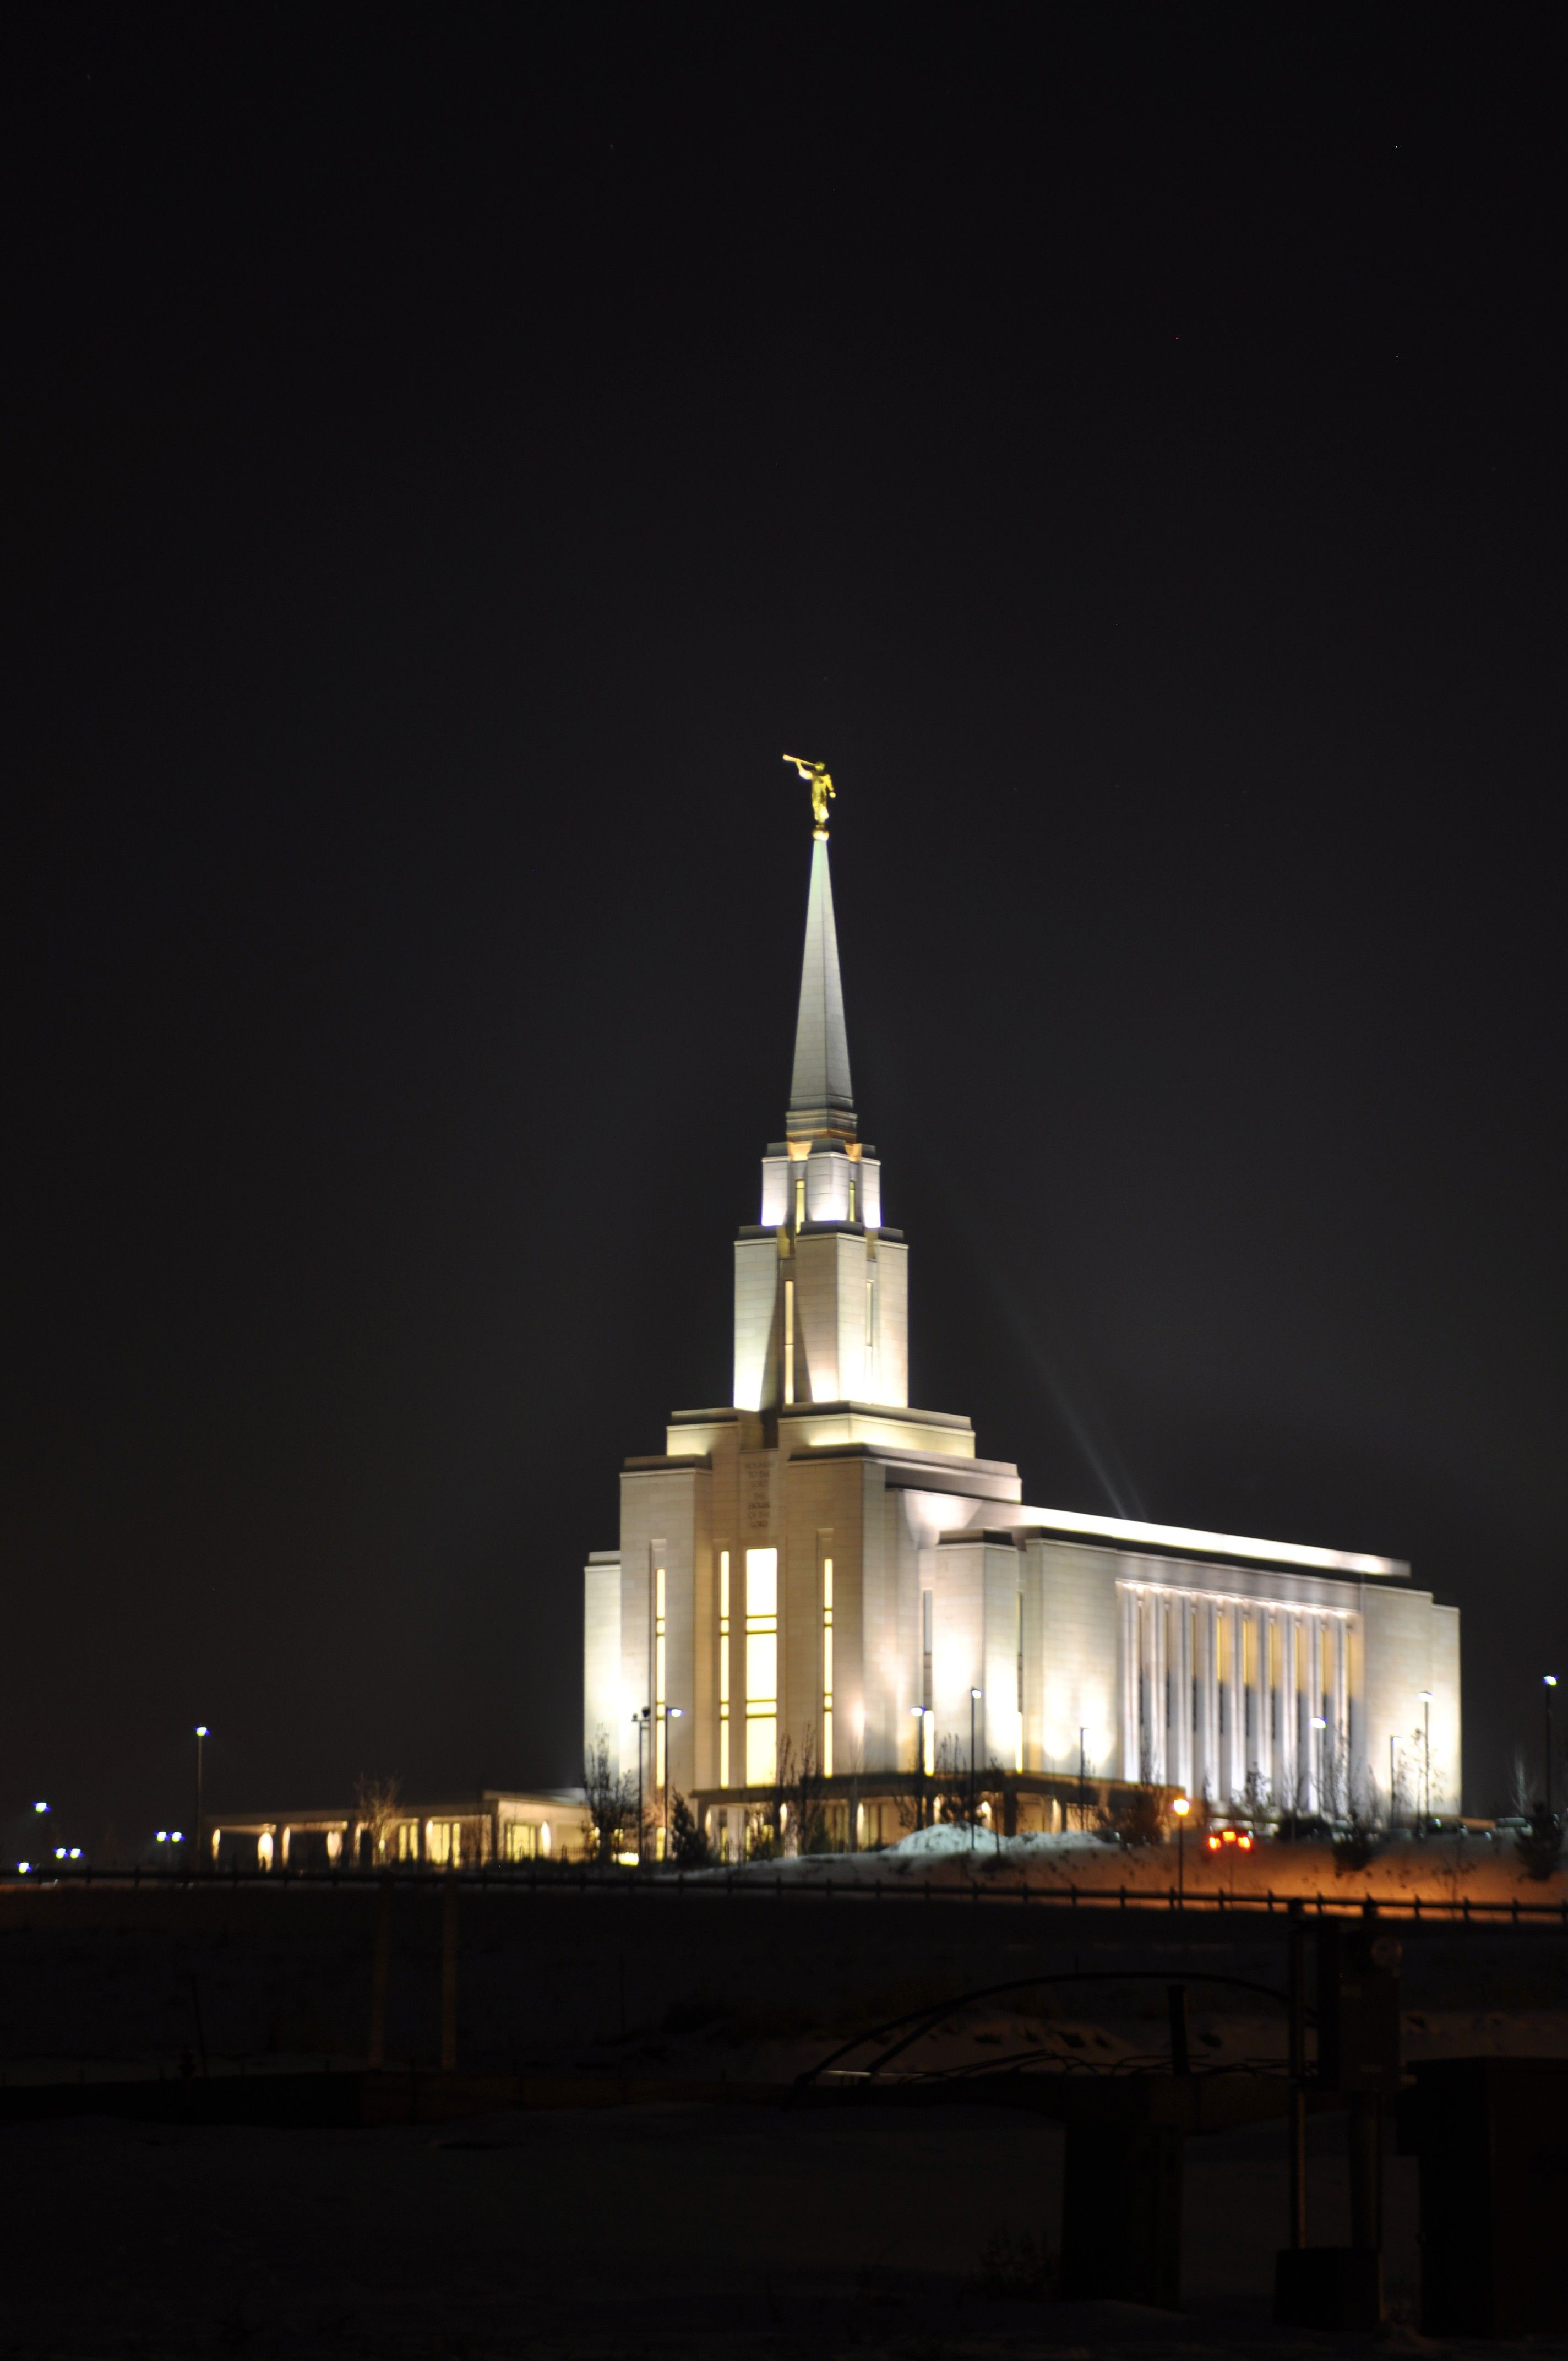 The Oquirrh Mountain Utah Temple in the evening.